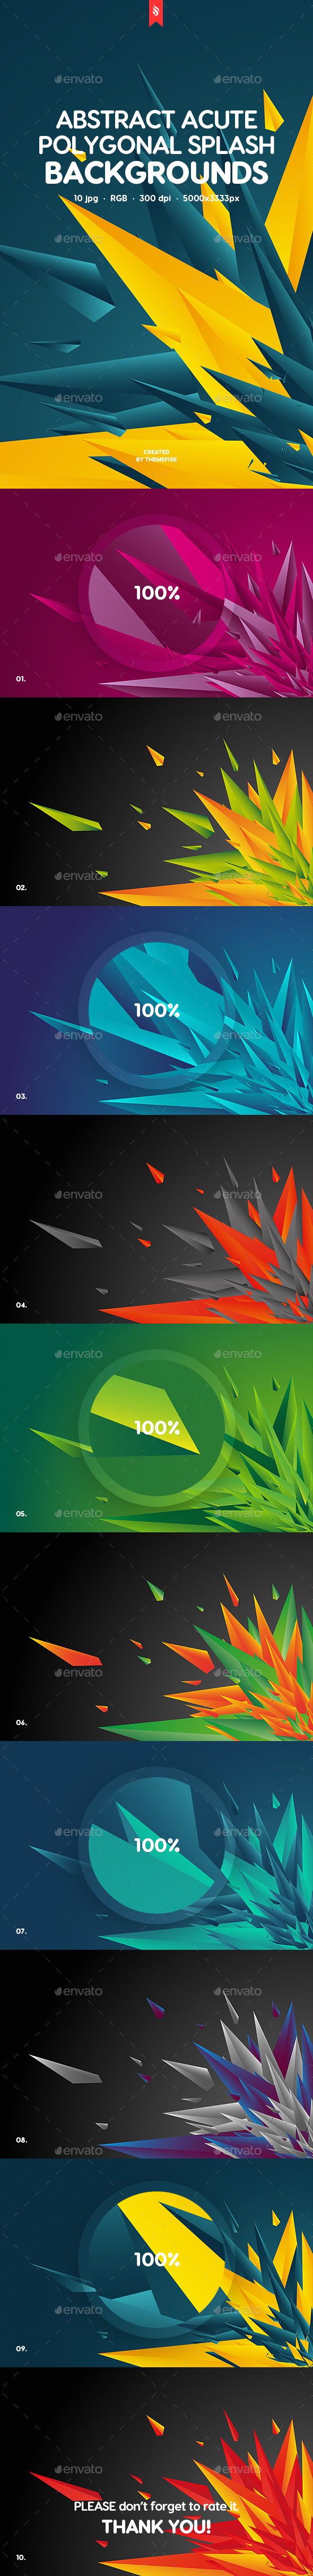 GraphicRiver Acute Polygonal Splash Backgrounds 20244660